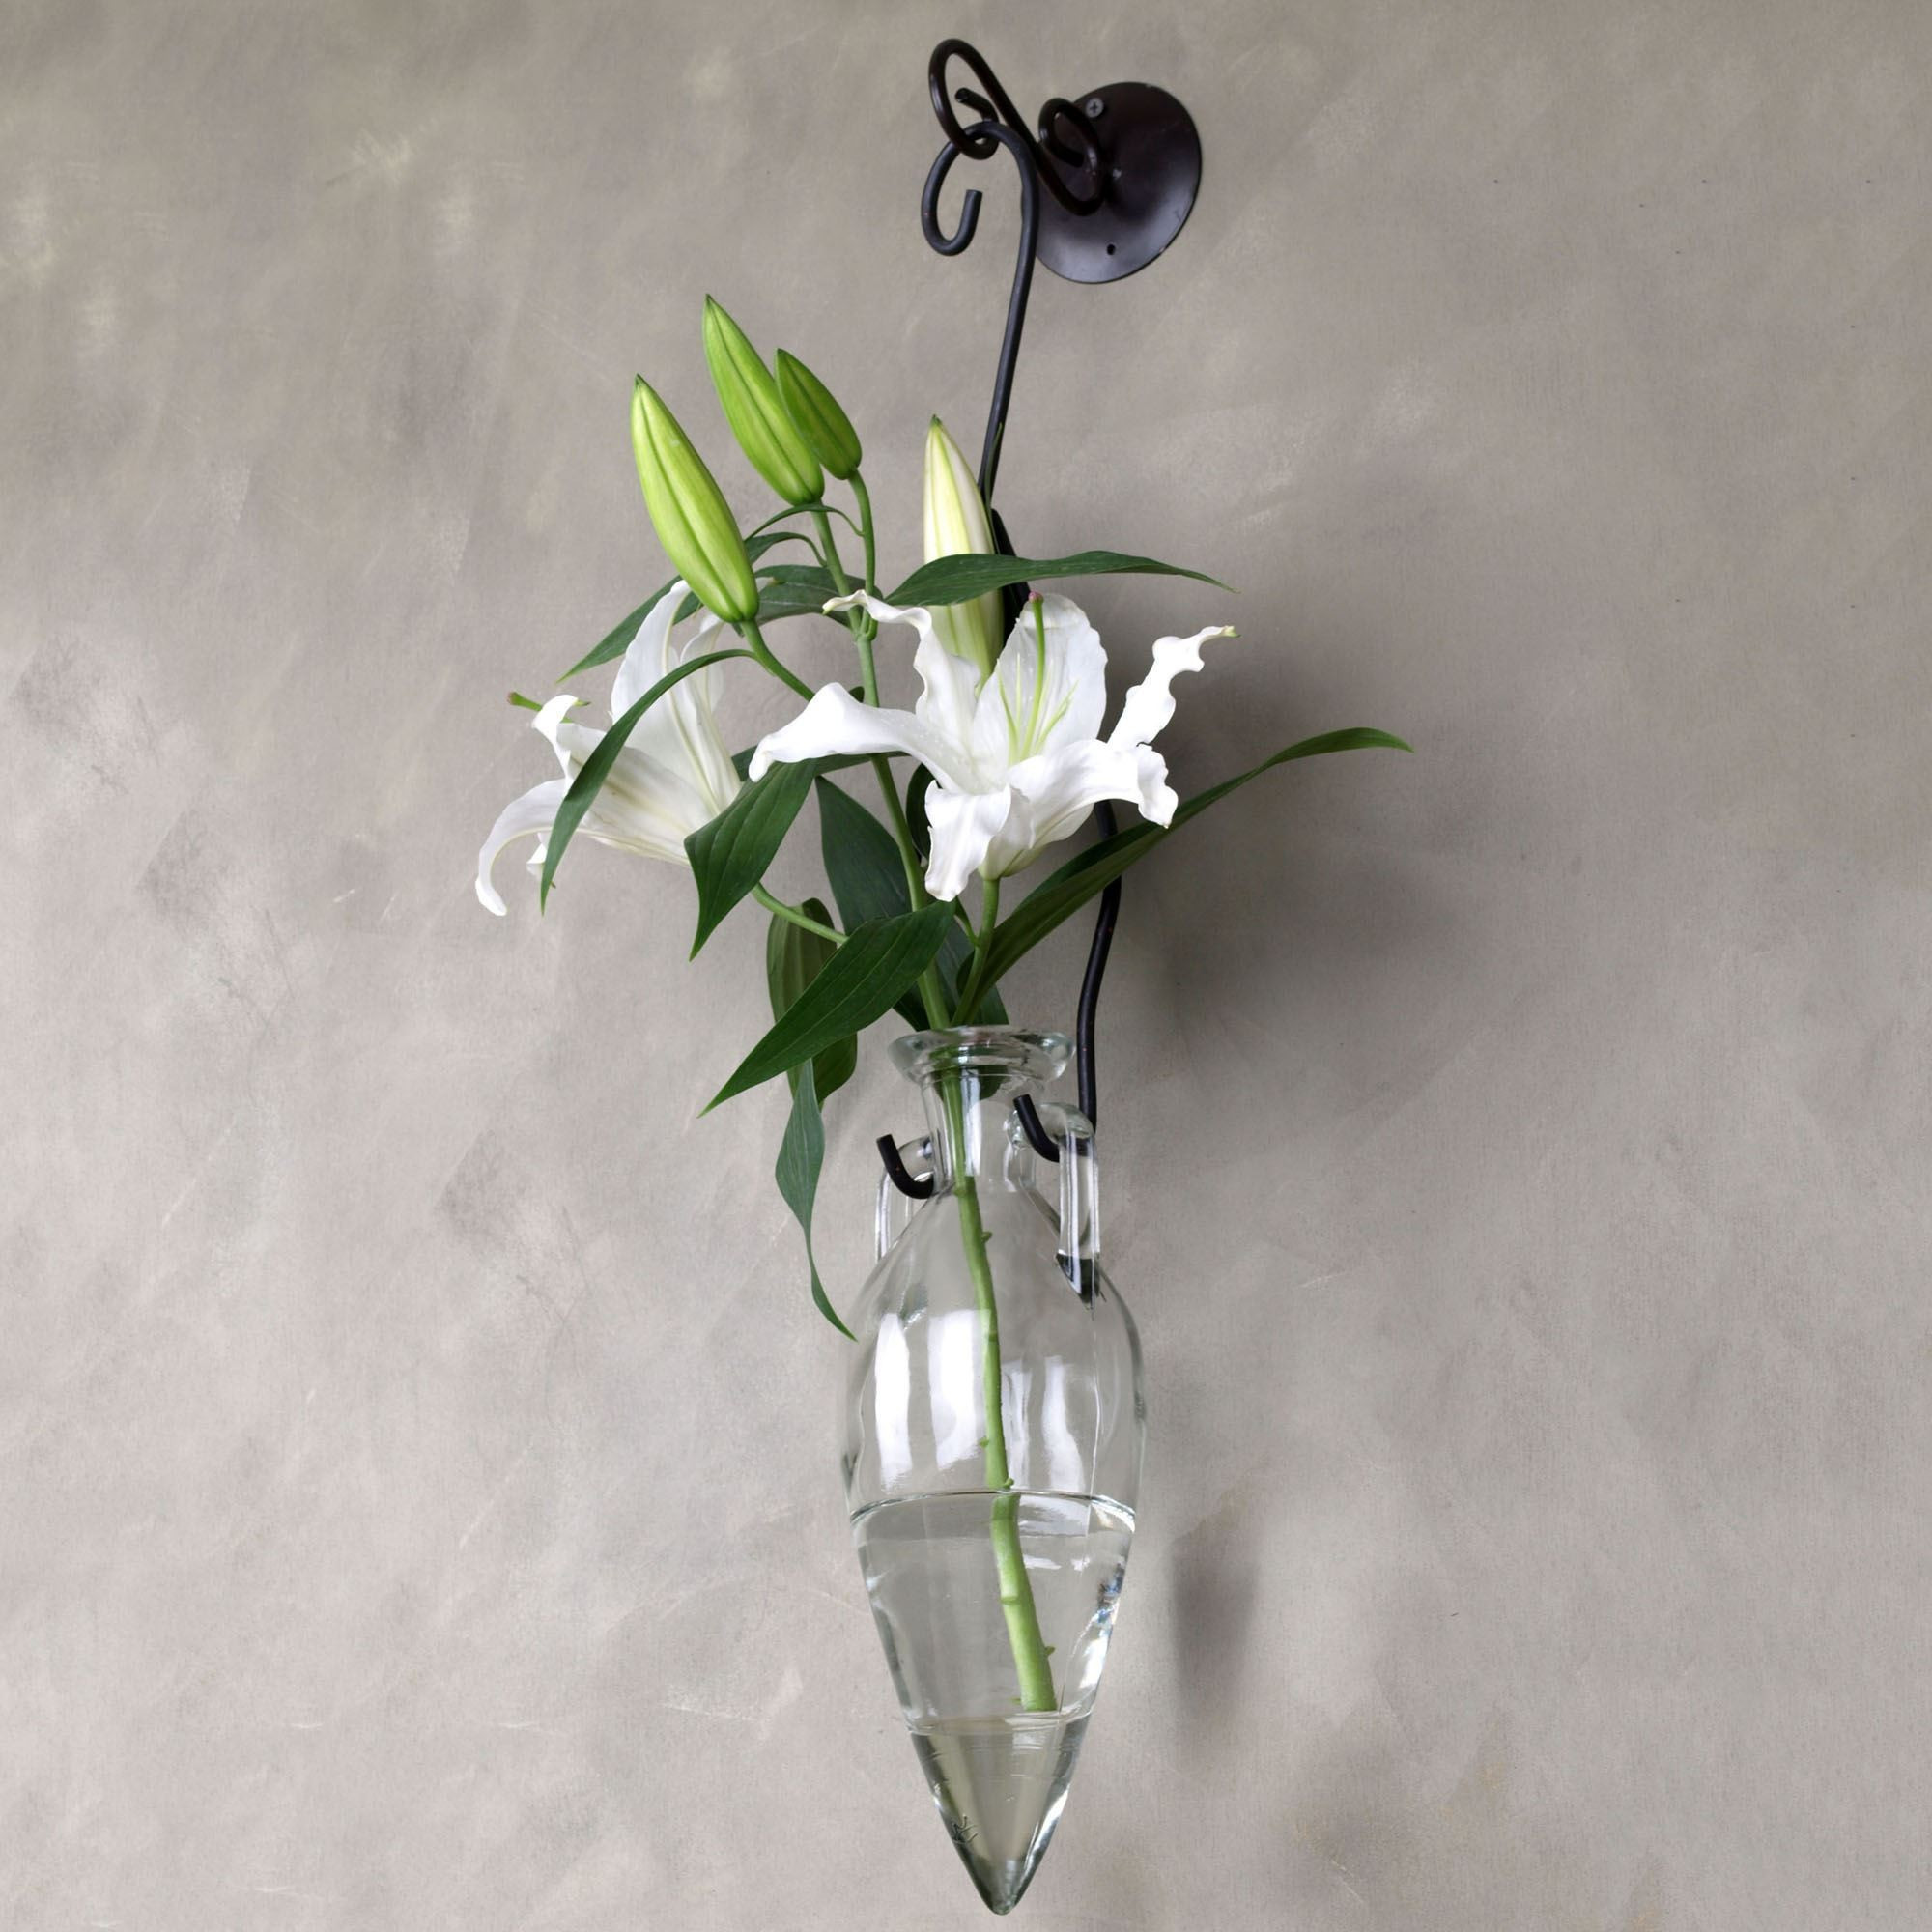 Vase with Roses Of Patio Plants In Pots Ideas Fresh H Vases Wall Hanging Flower Vase Throughout H Vases Wall Hanging Flower Vase Newspaper I 0d Scheme Wall Scheme